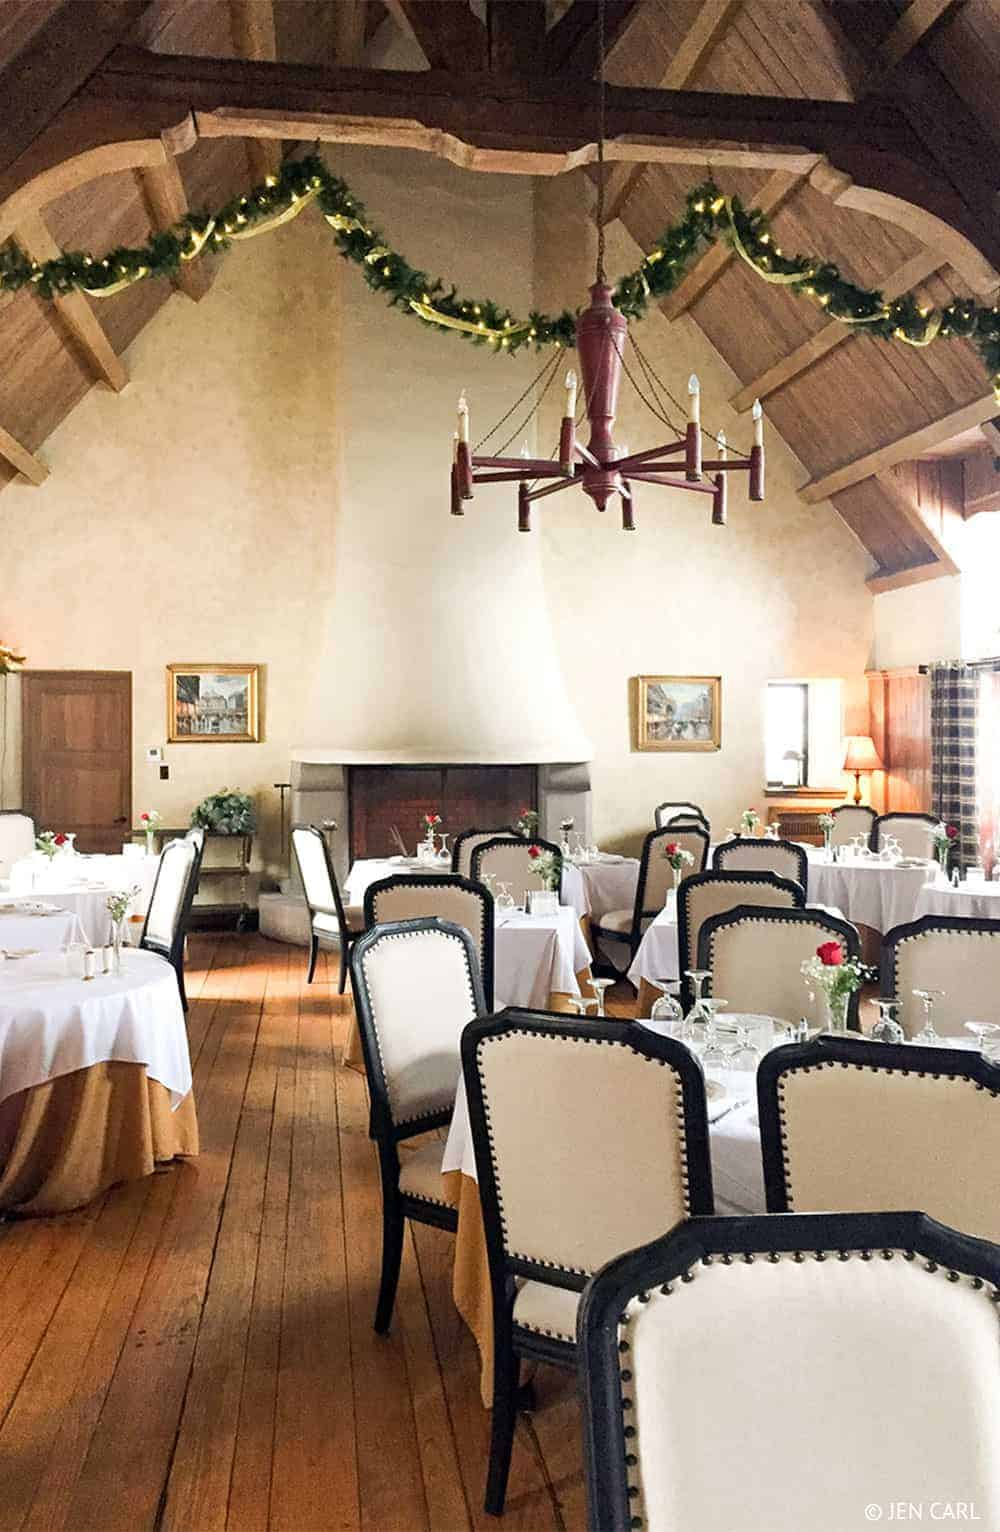 The French Manor Inn and Spa - A Couples Getaway in the Heart of the Poconos - Restaurant Dining Room